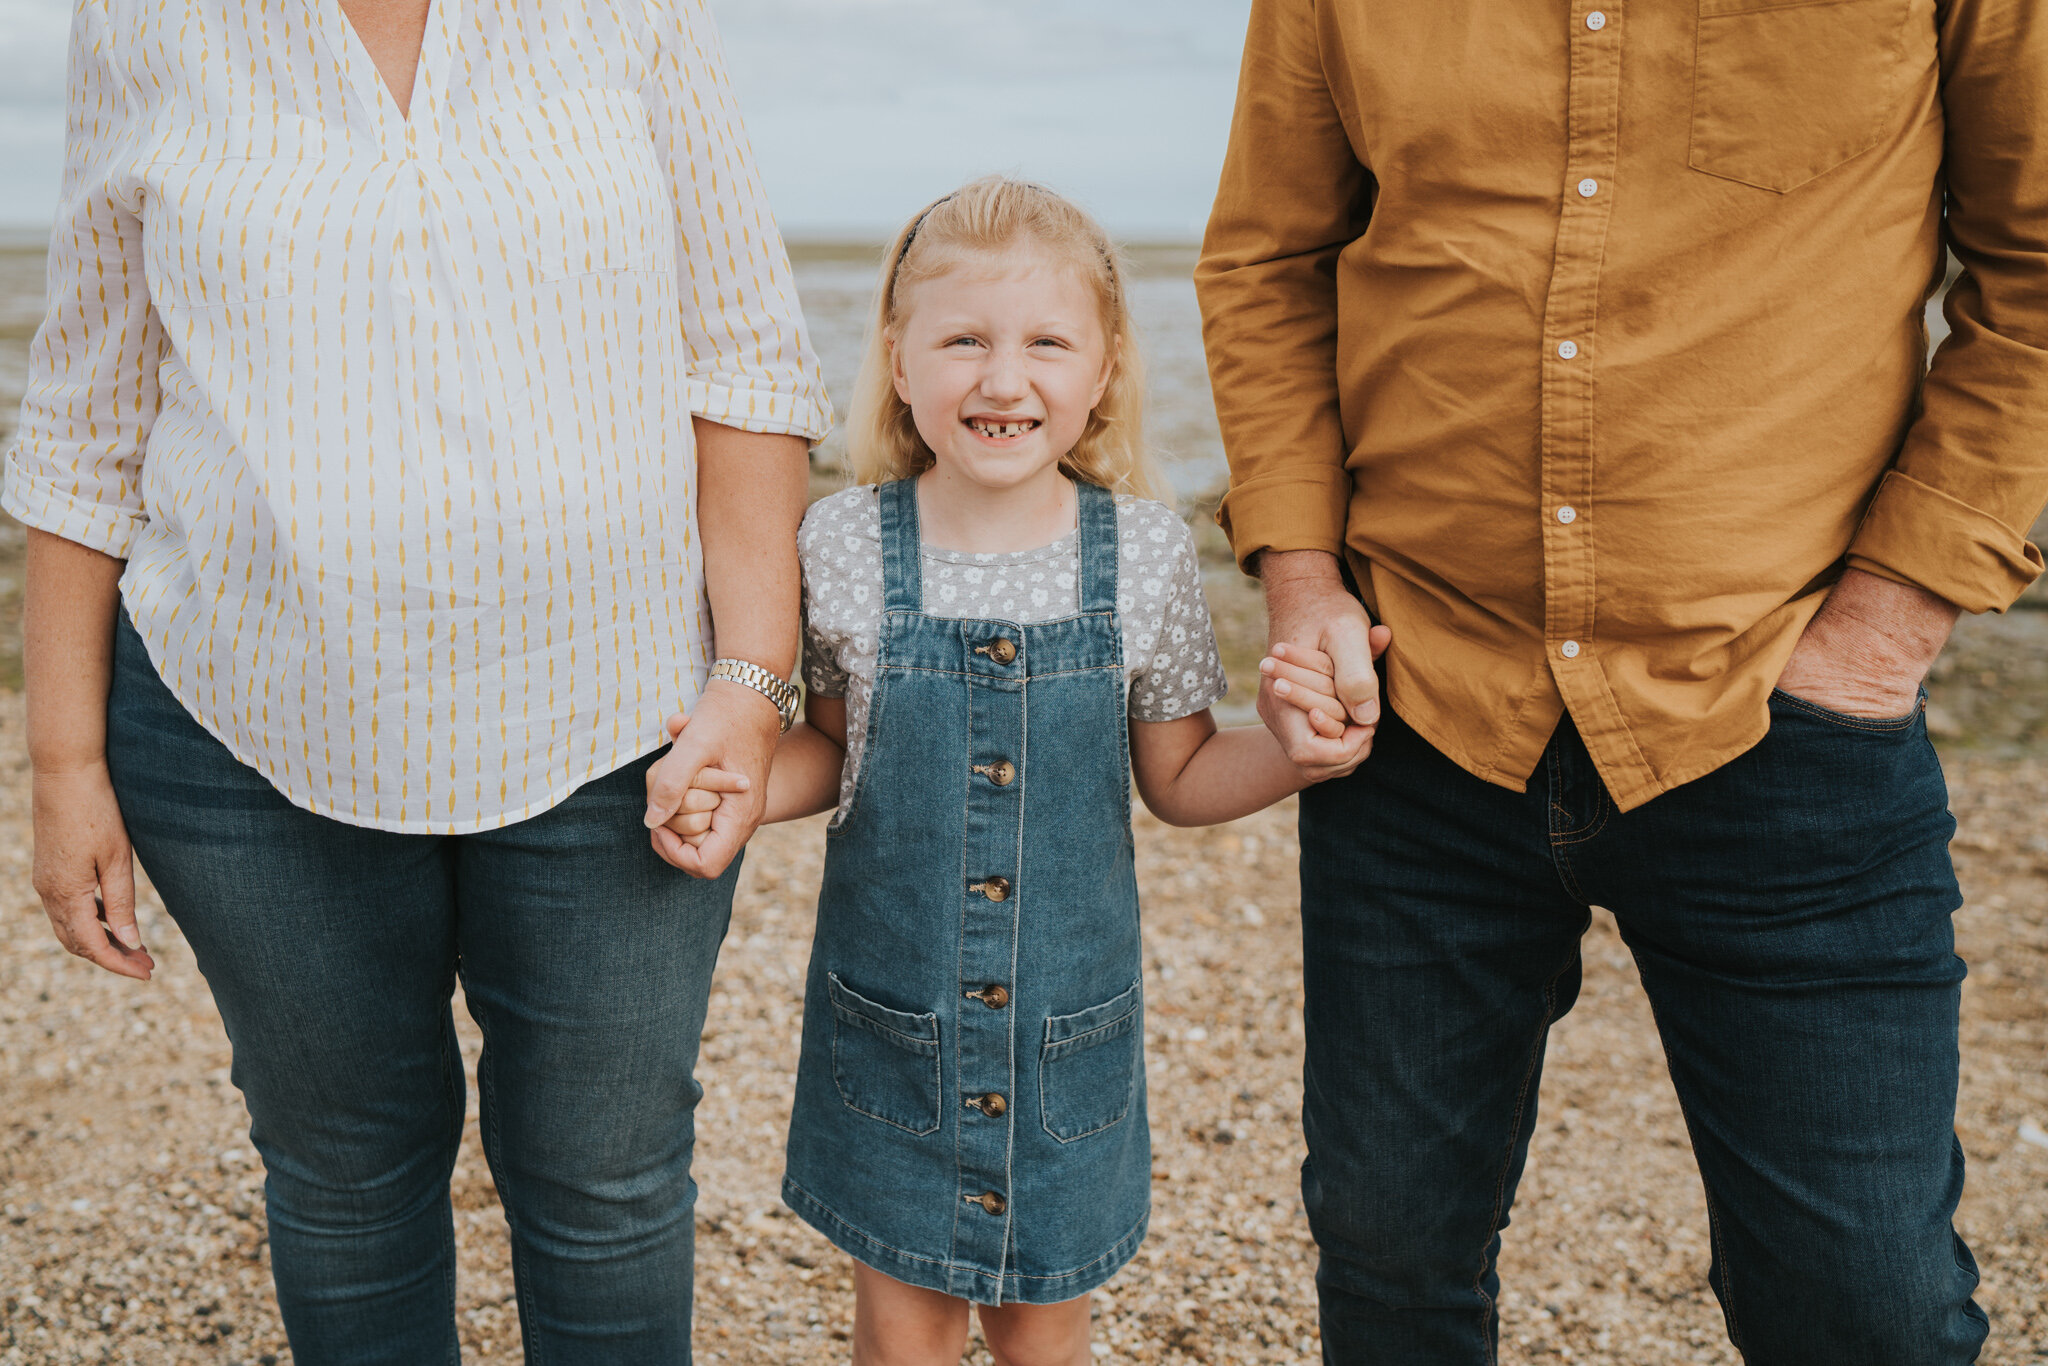 celebratory-beach-family-session-thomson-family-cudmore-grove-east-mersea-grace-elizabeth-colchester-essex-devon-suffolk-and-norfolk-alternative-wedding-and-family-photographer (5 of 53).jpg